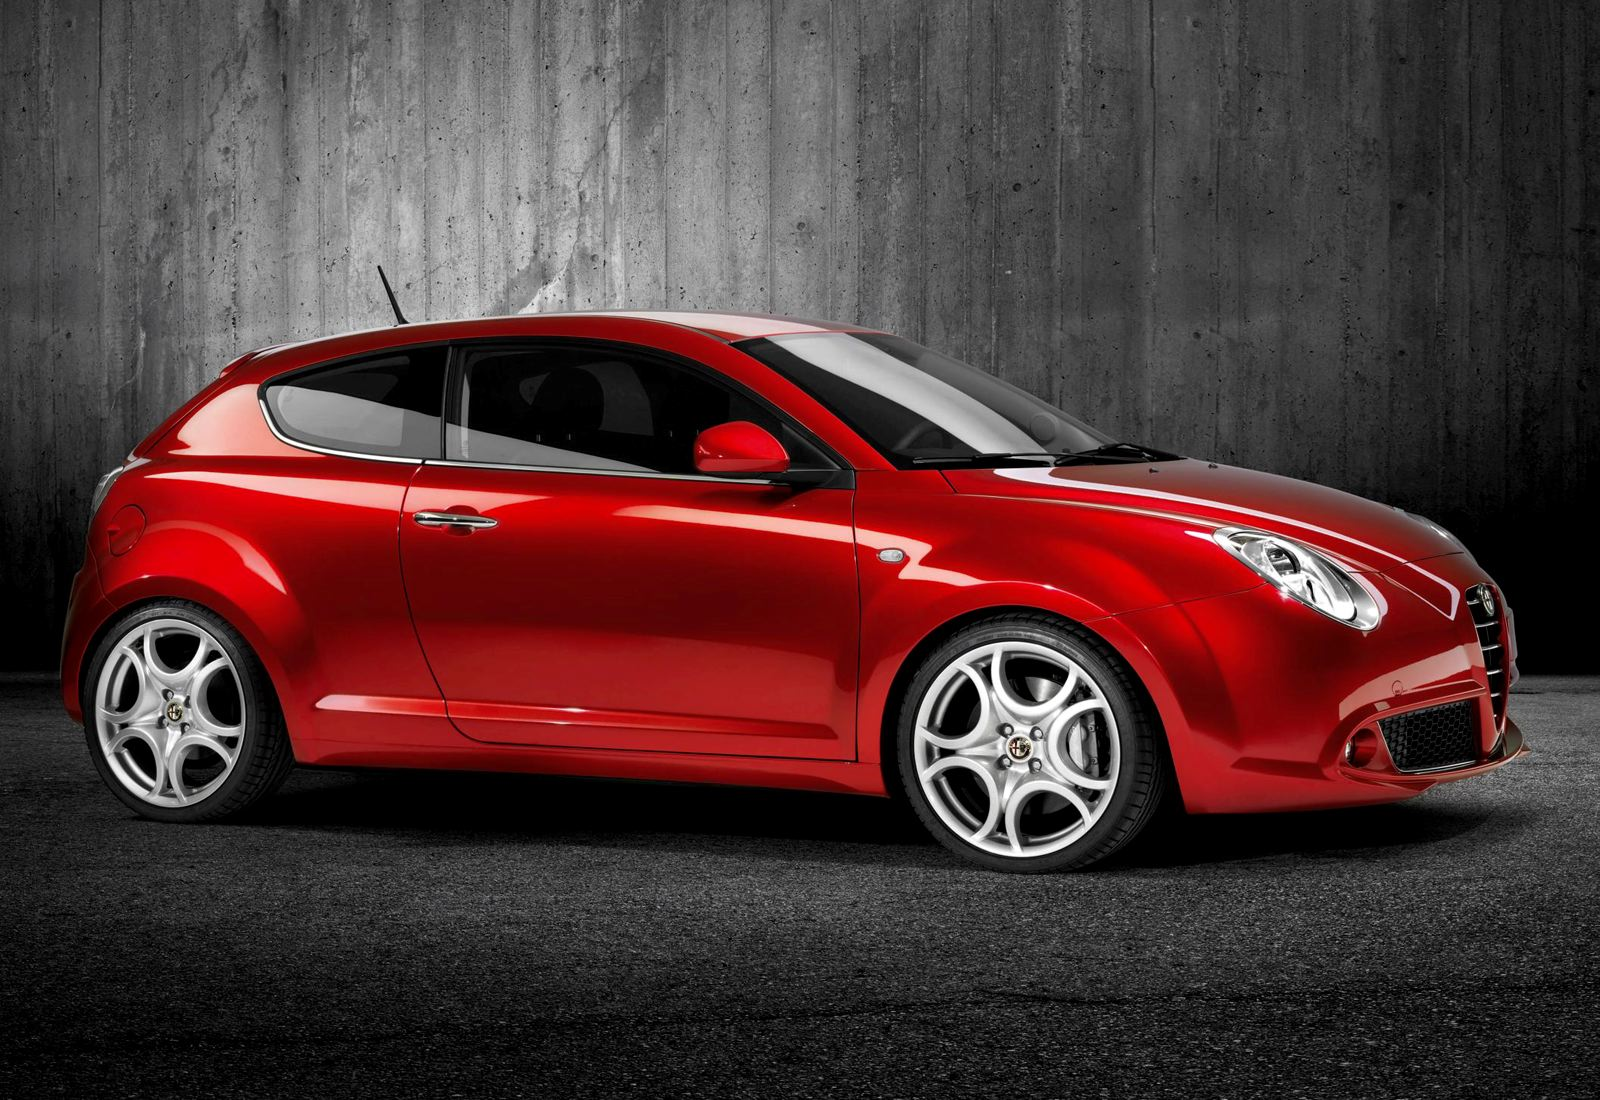 automobiles tout savoir sur les marques alfa romeo mito. Black Bedroom Furniture Sets. Home Design Ideas